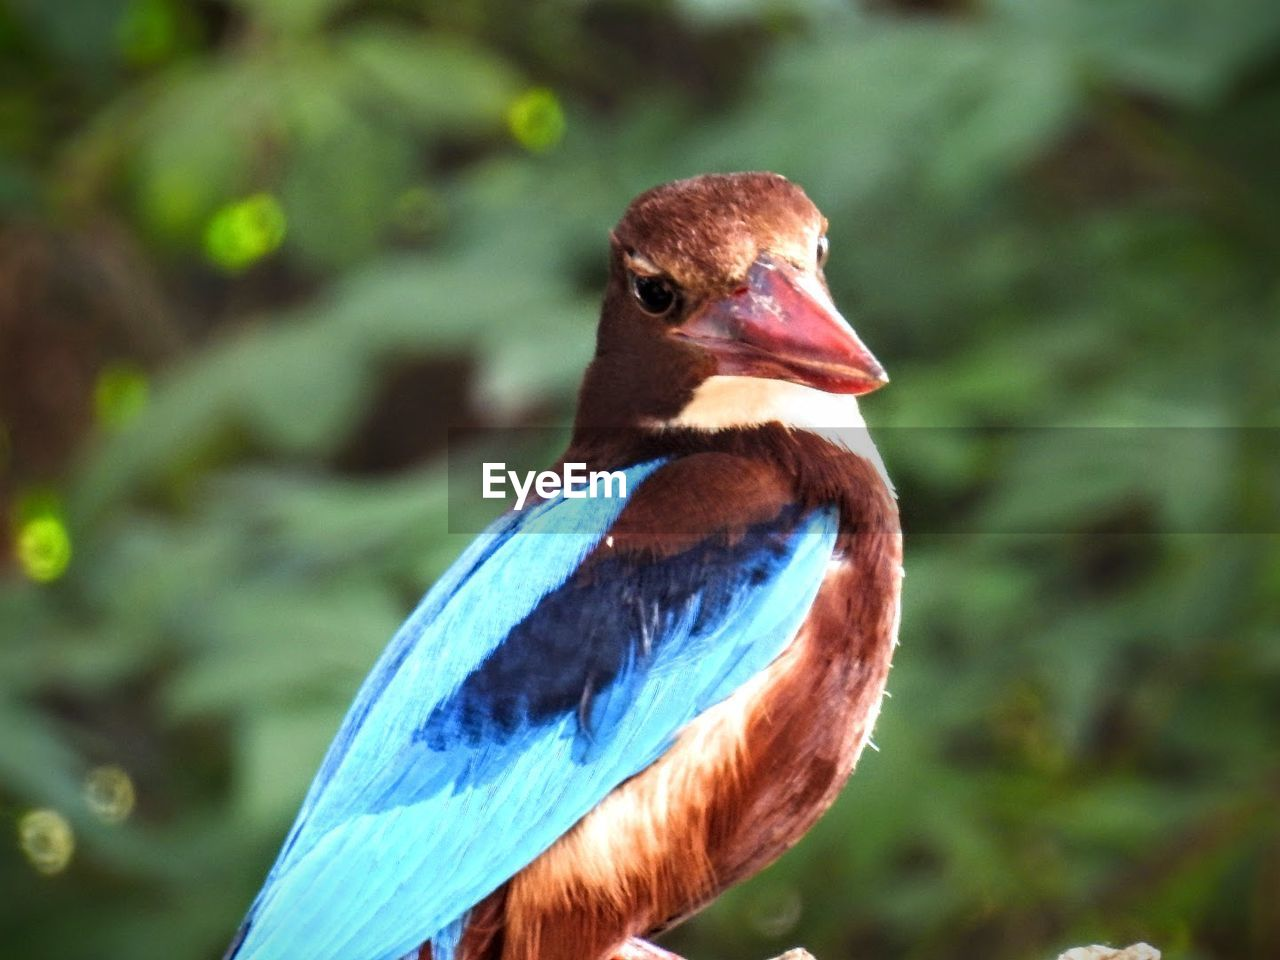 animal themes, one animal, animals in the wild, bird, focus on foreground, animal wildlife, beak, nature, close-up, day, no people, perching, outdoors, beauty in nature